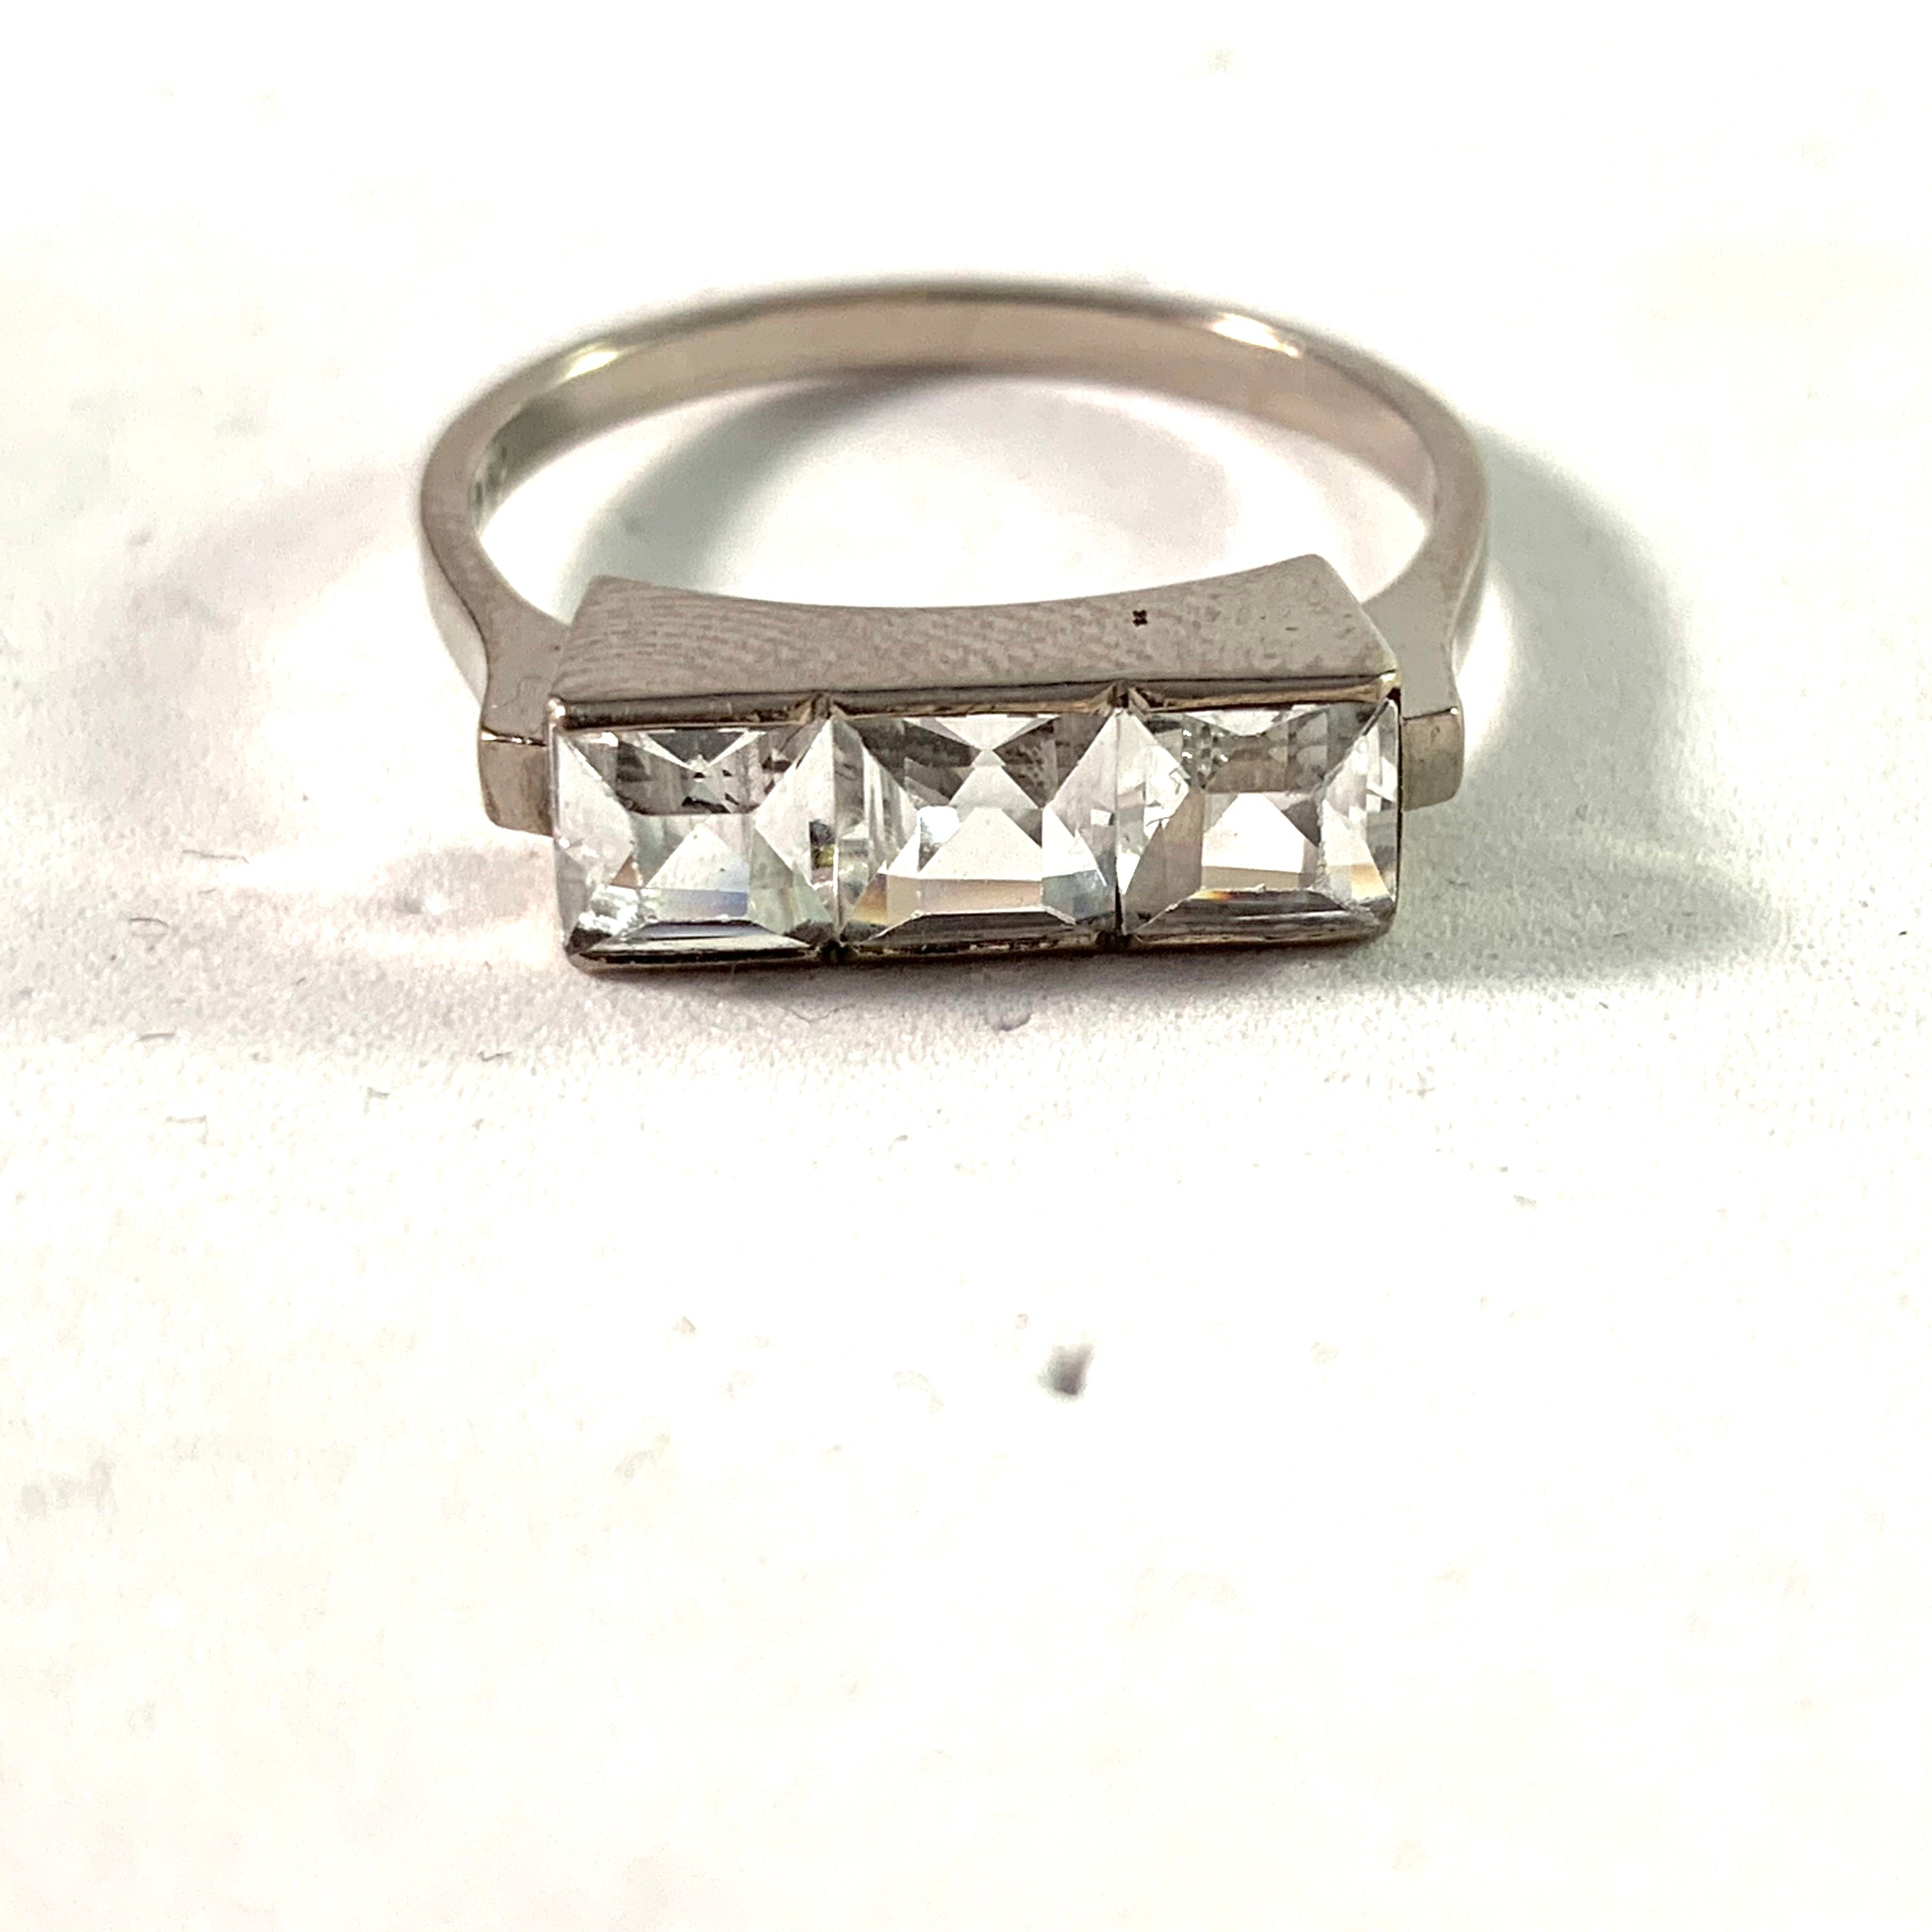 Nils Widberg, Sweden 1951, Mid Century 18k White Gold Rock Crystal Ring